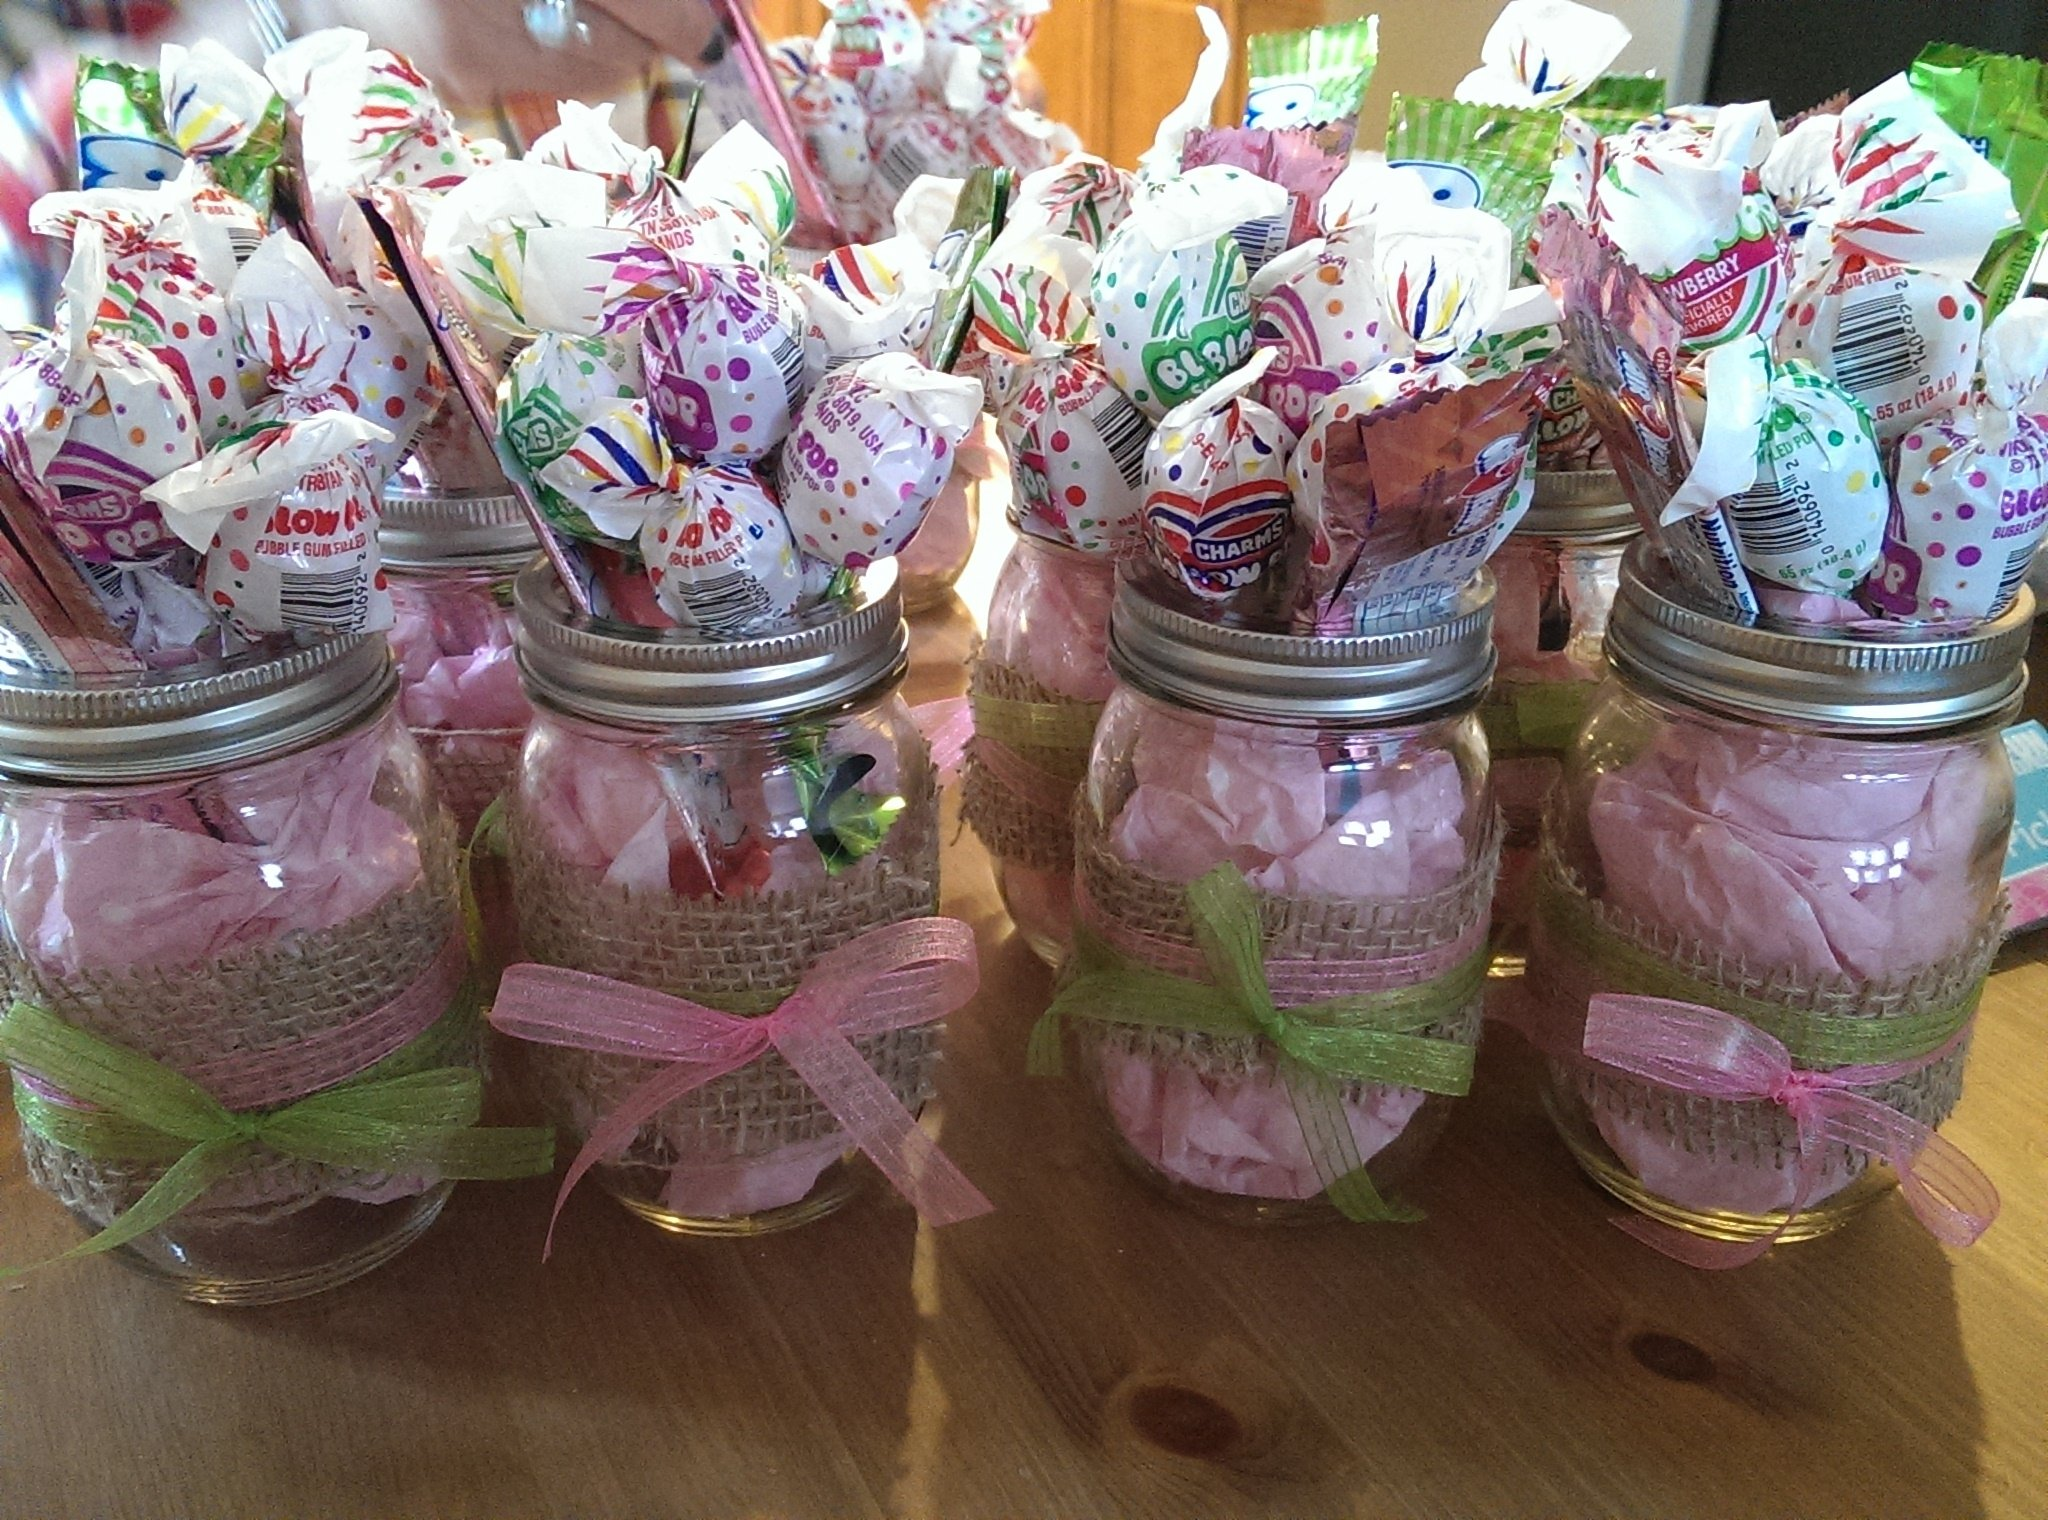 10 Fashionable Mason Jar Baby Shower Ideas mason jars baby shower center pieces baby girls decorations 2021